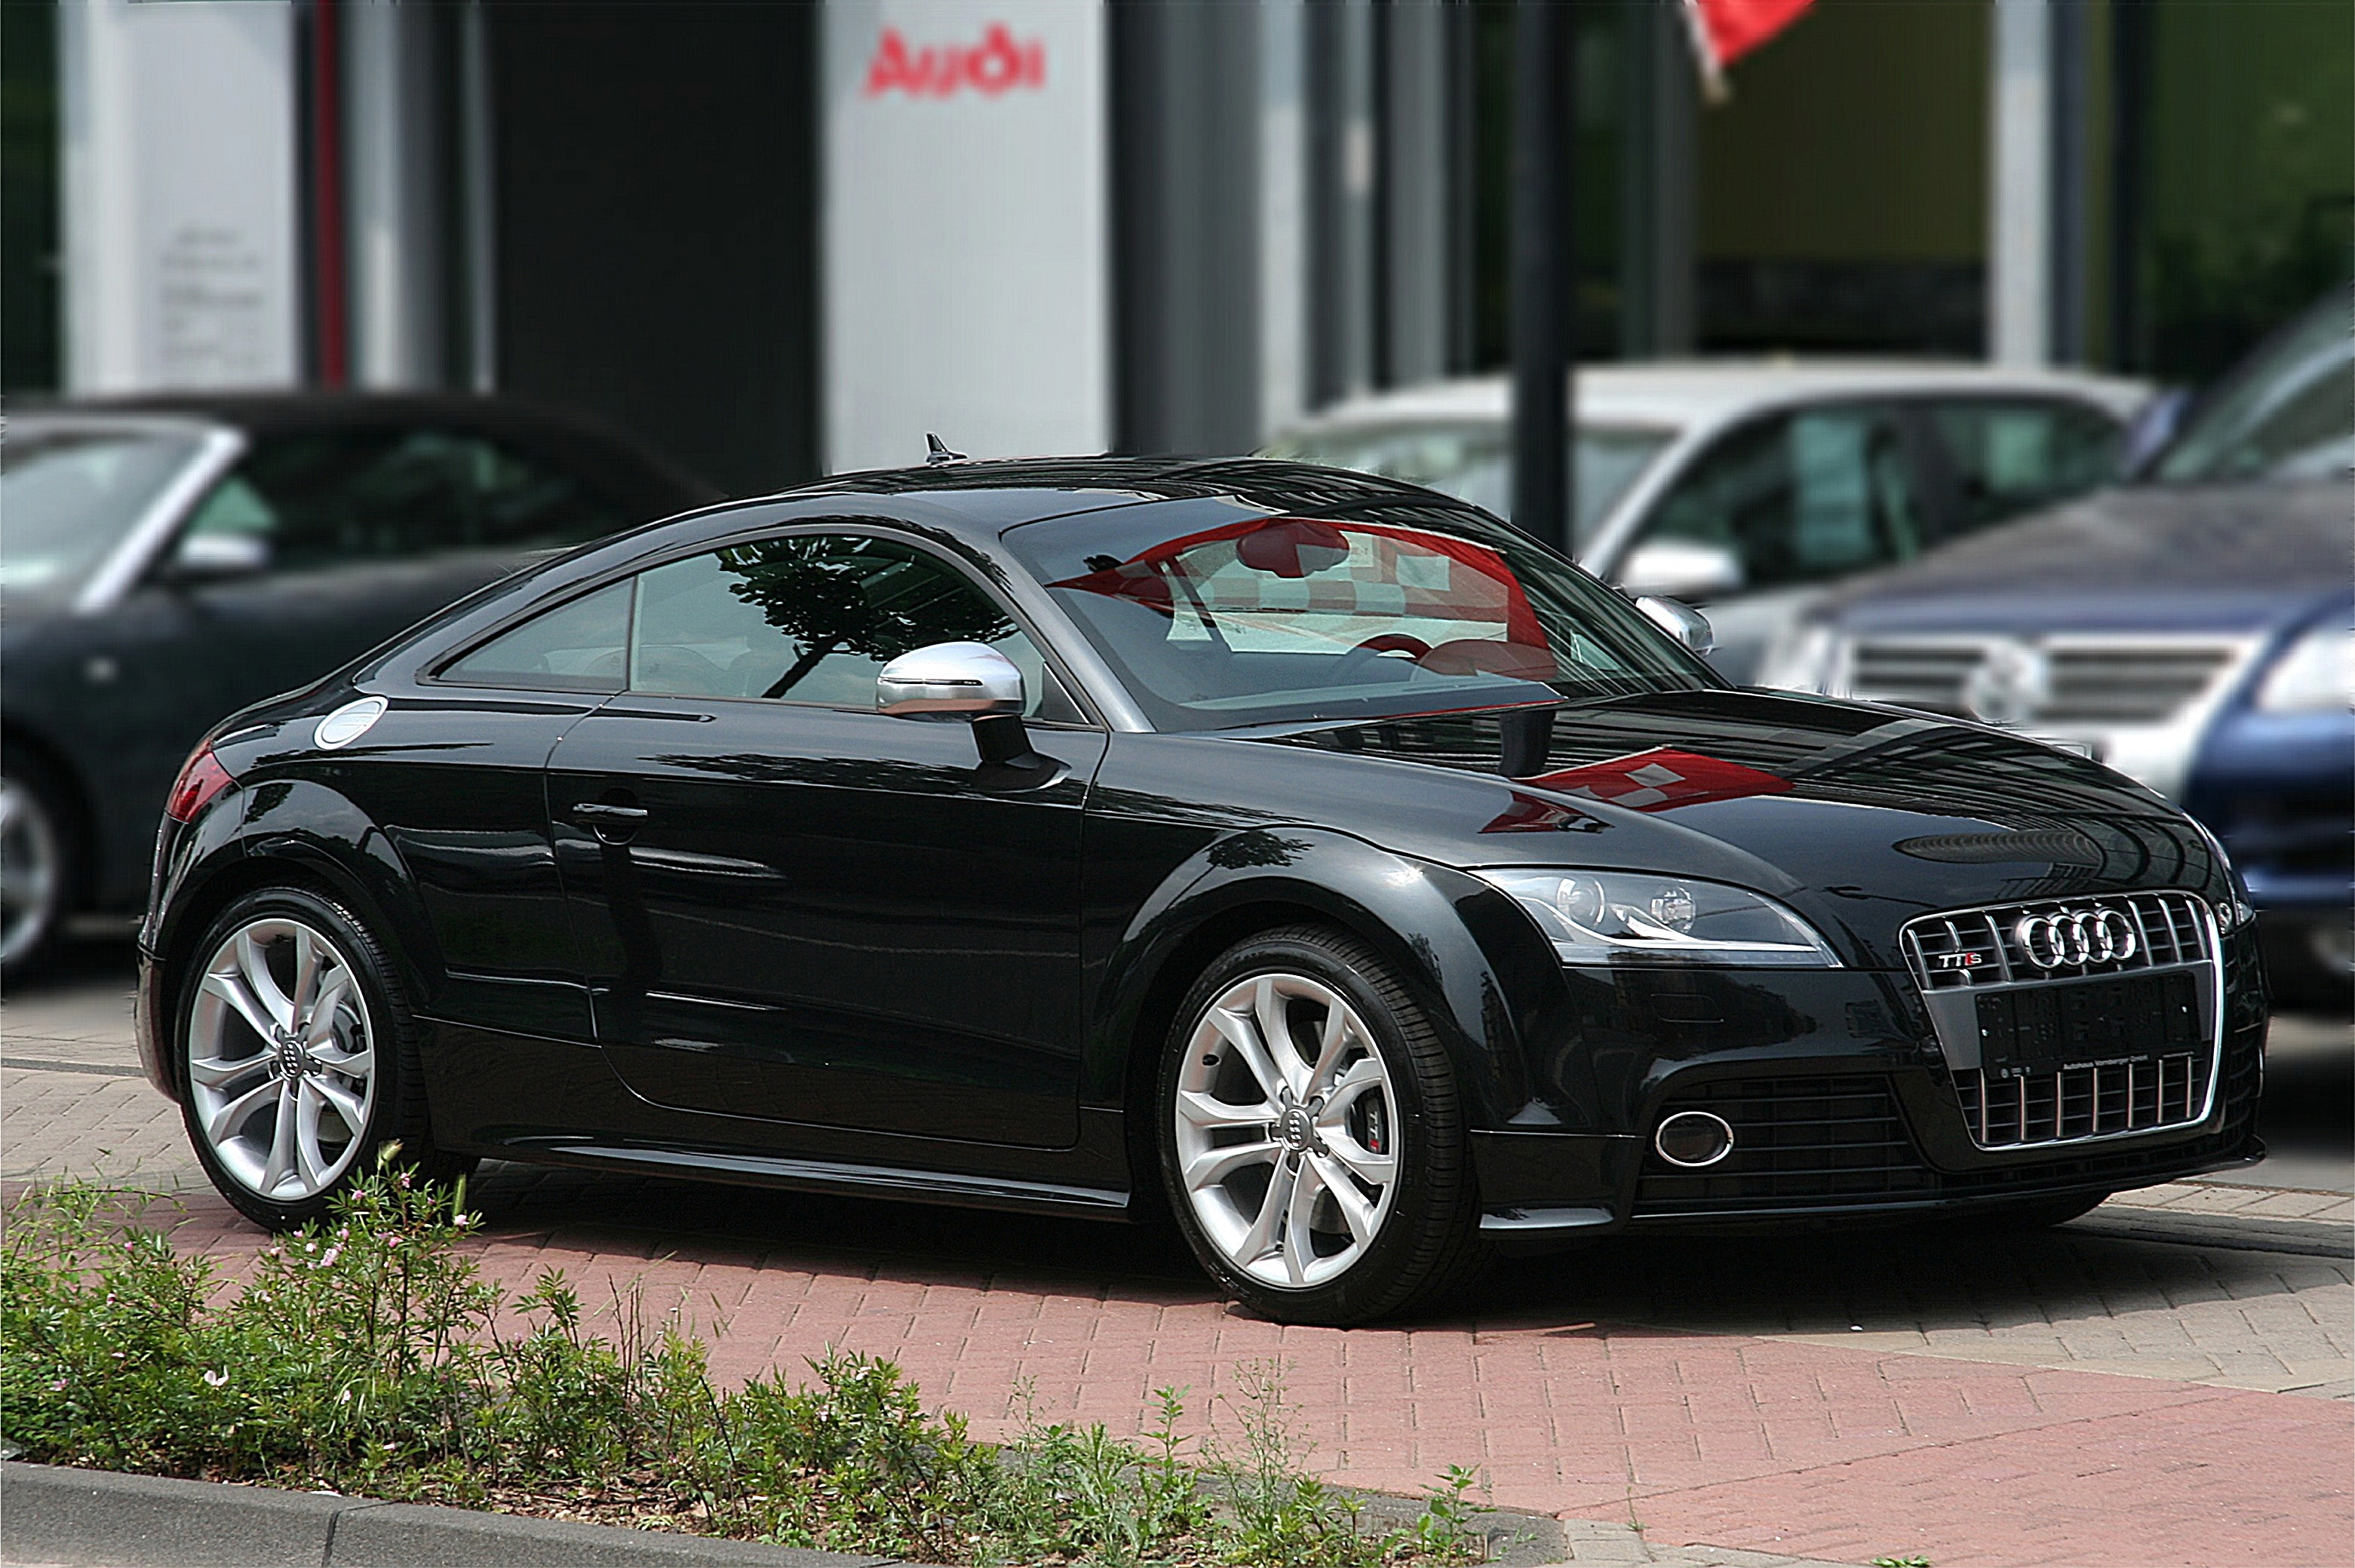 2008 audi tt information and photos momentcar. Black Bedroom Furniture Sets. Home Design Ideas